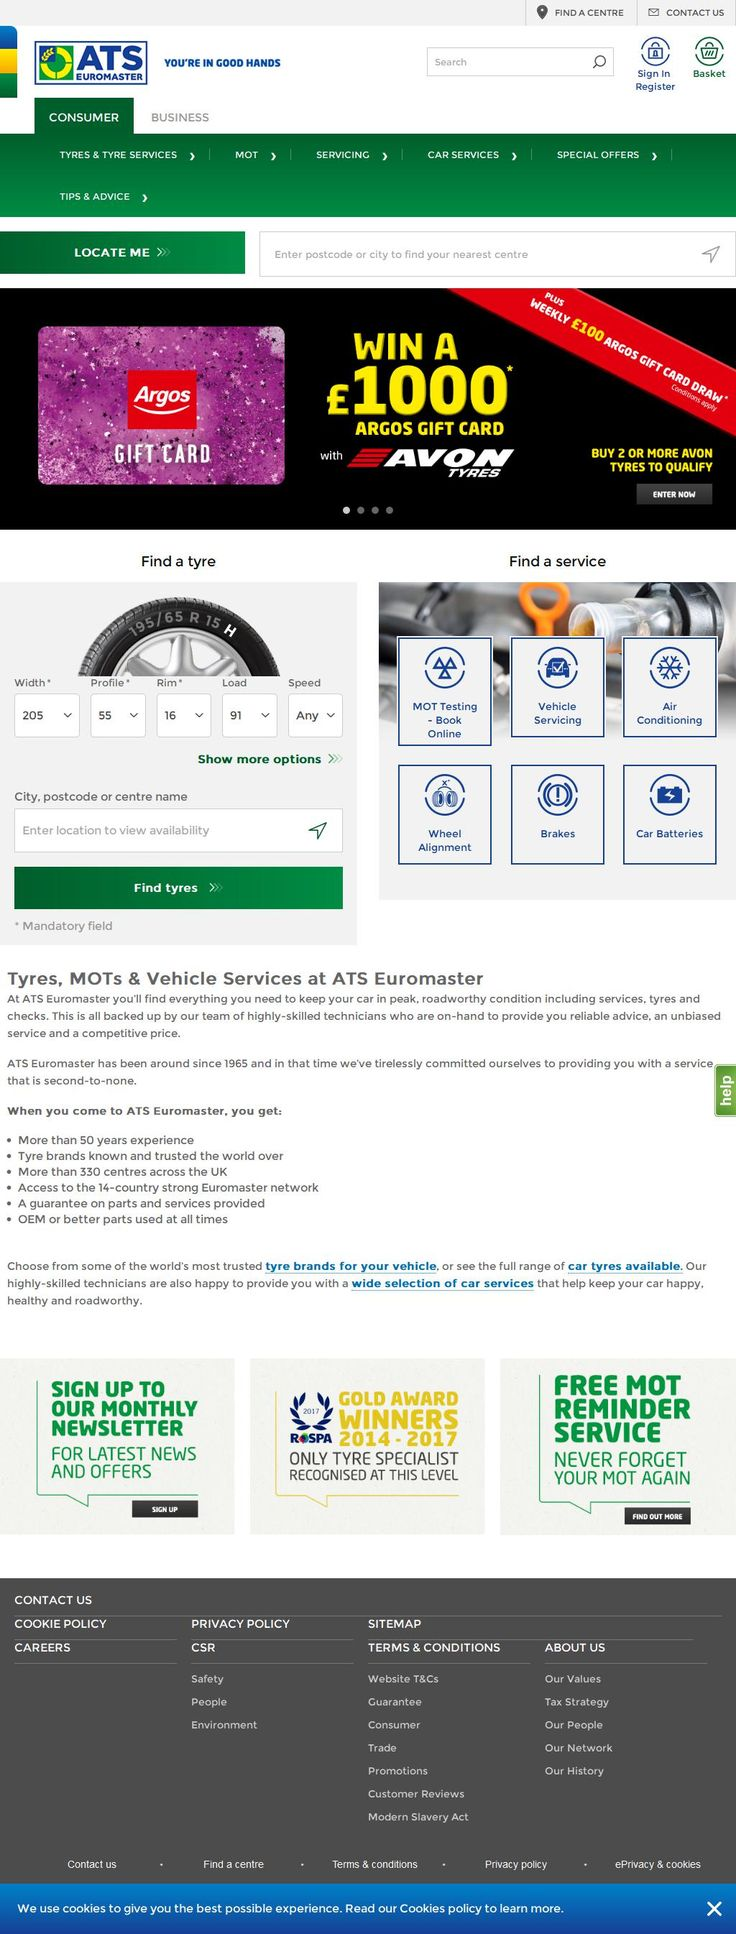 ATS Euromaster Ltd Tyre Services Blenheim Road  Airfield Industrial Estate Ashbourne Derbyshire DE6 1HA   To get more infomration about ATS Euromaster Ltd, Location Map, Phone numbers, Email, Website please visit http://www.HaiUK.co.uk